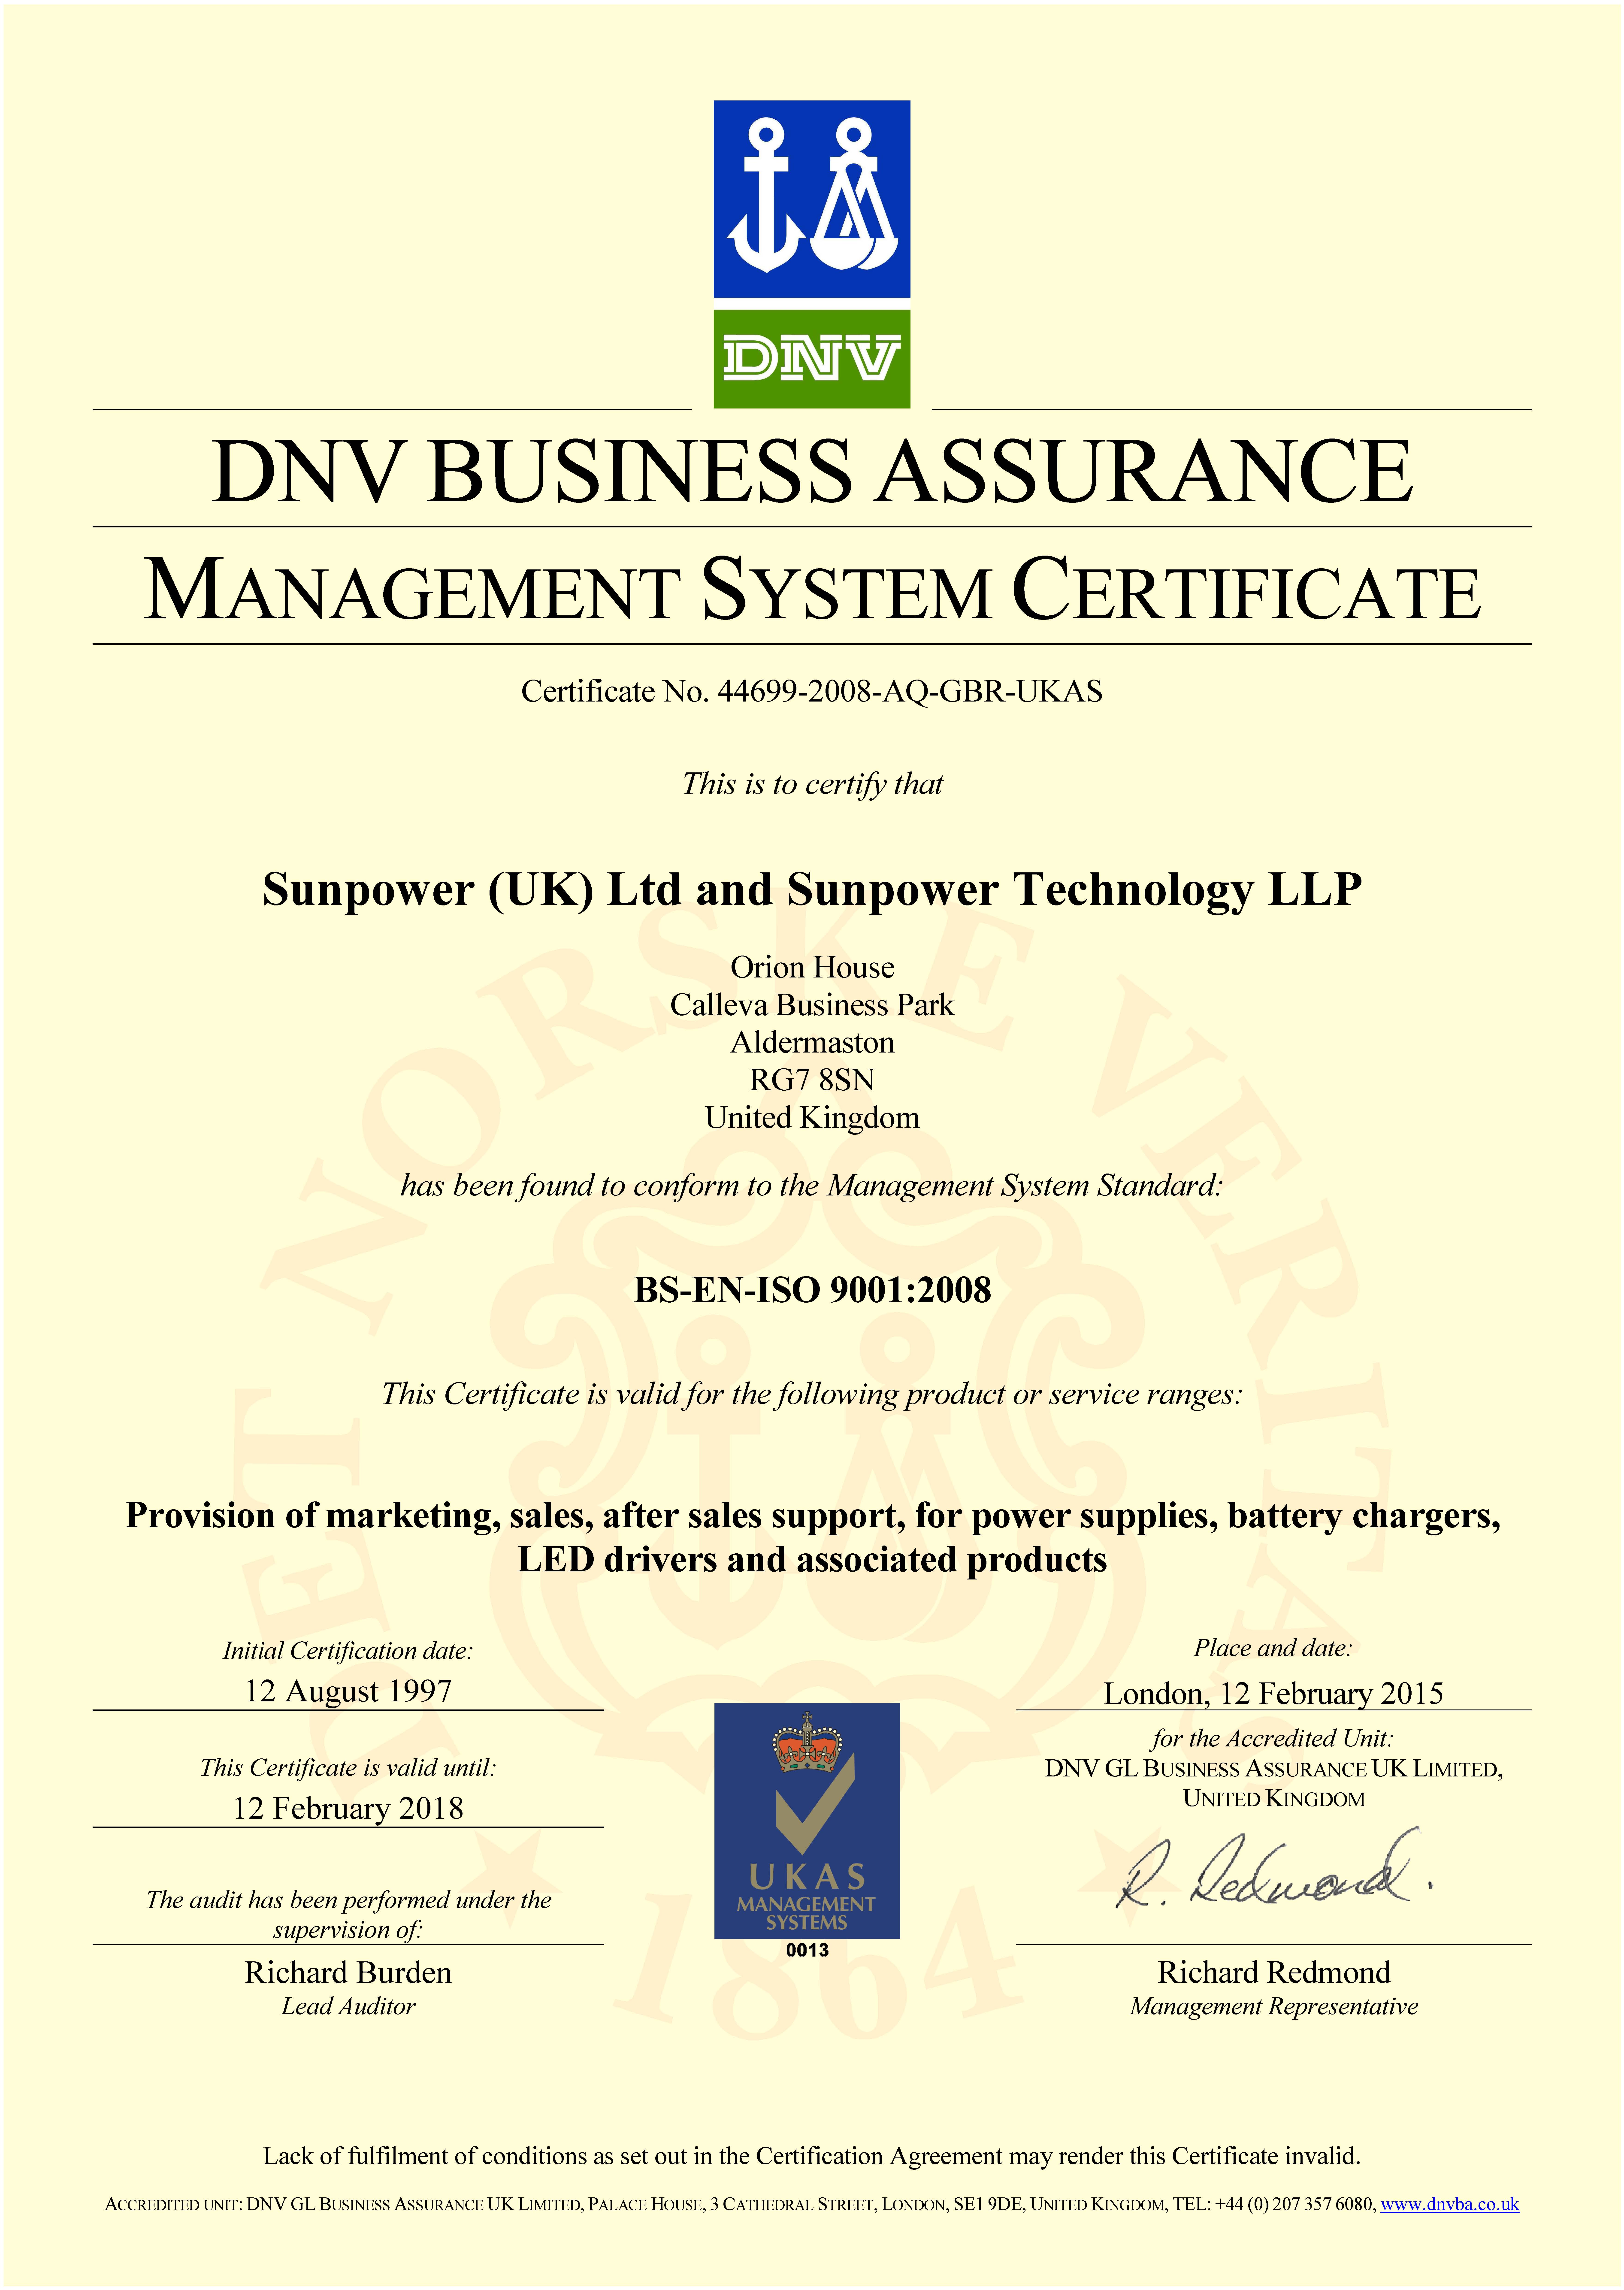 Sunpower ISO 9000 Certificate Sunpower UK